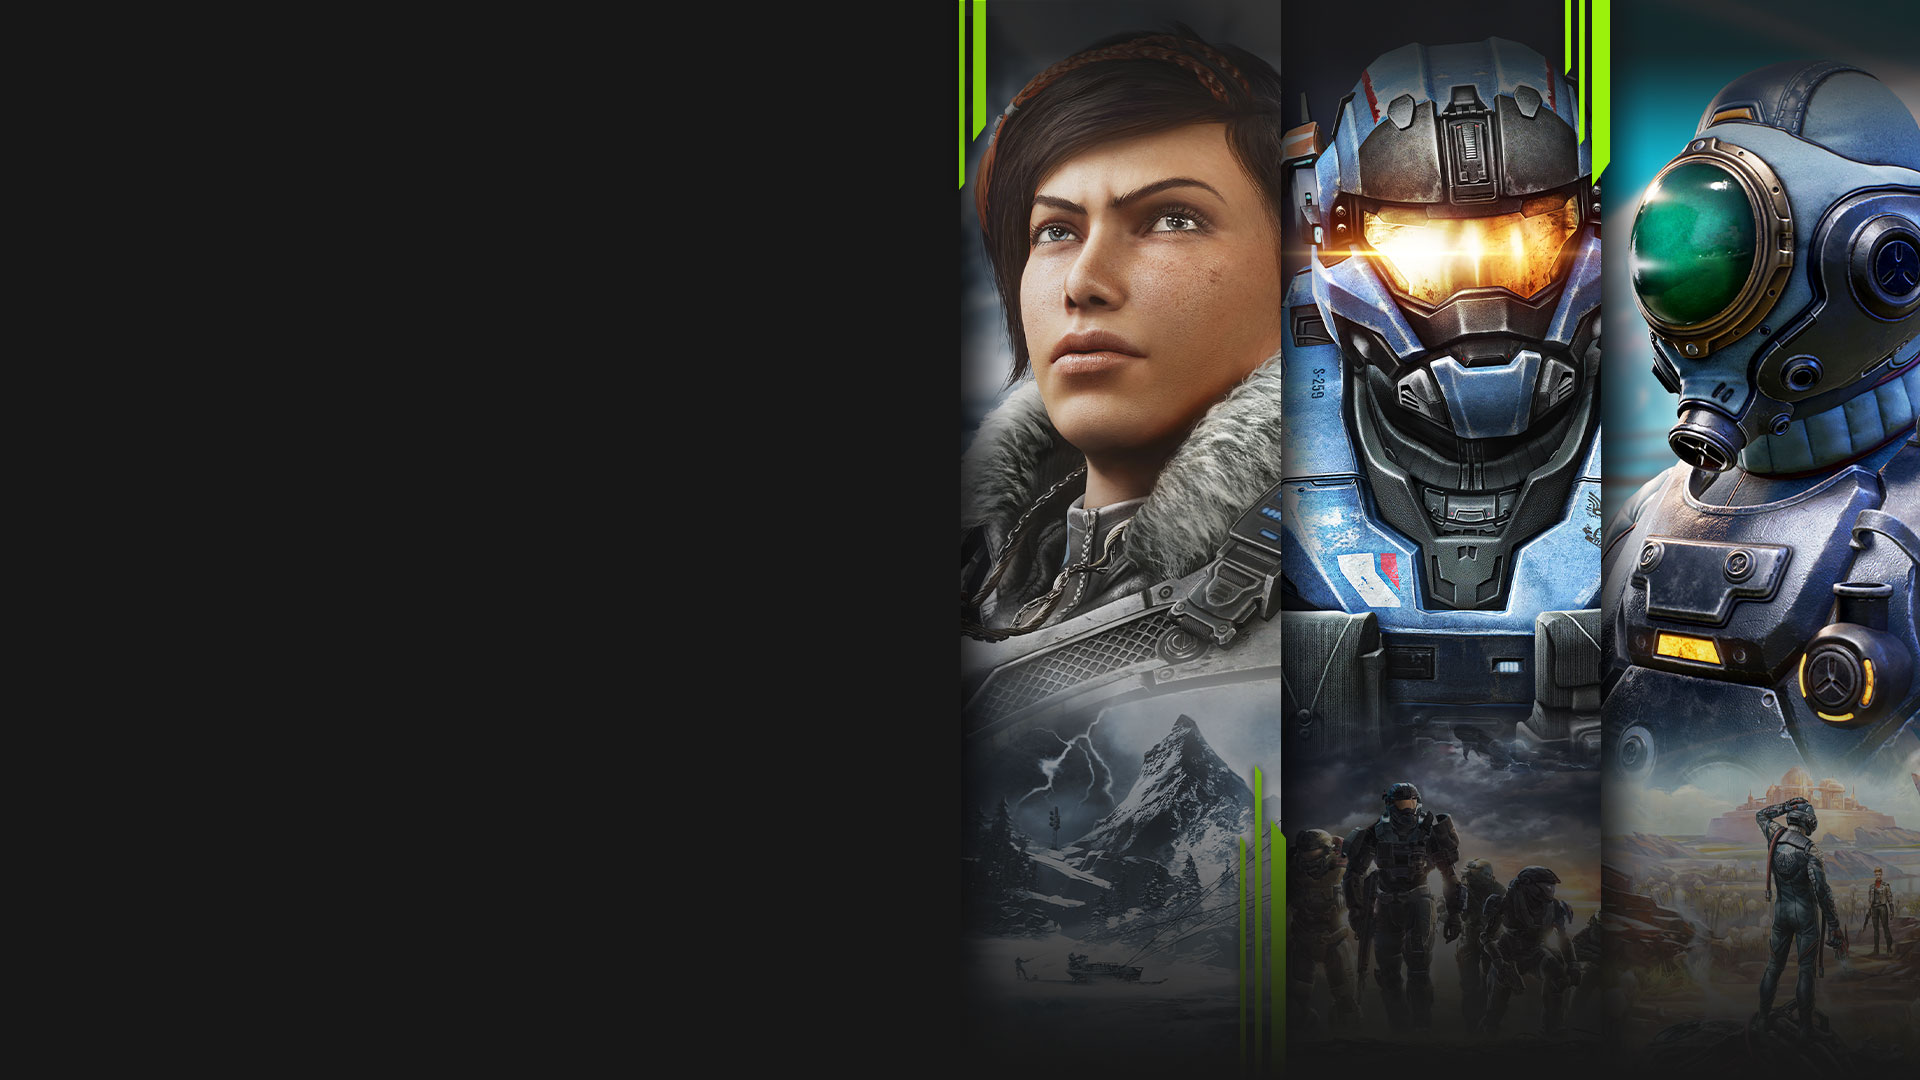 Game art from multiple games available with Xbox Game Pass including Gears 5, Halo: The Master Chief Collection and The Outer Worlds.